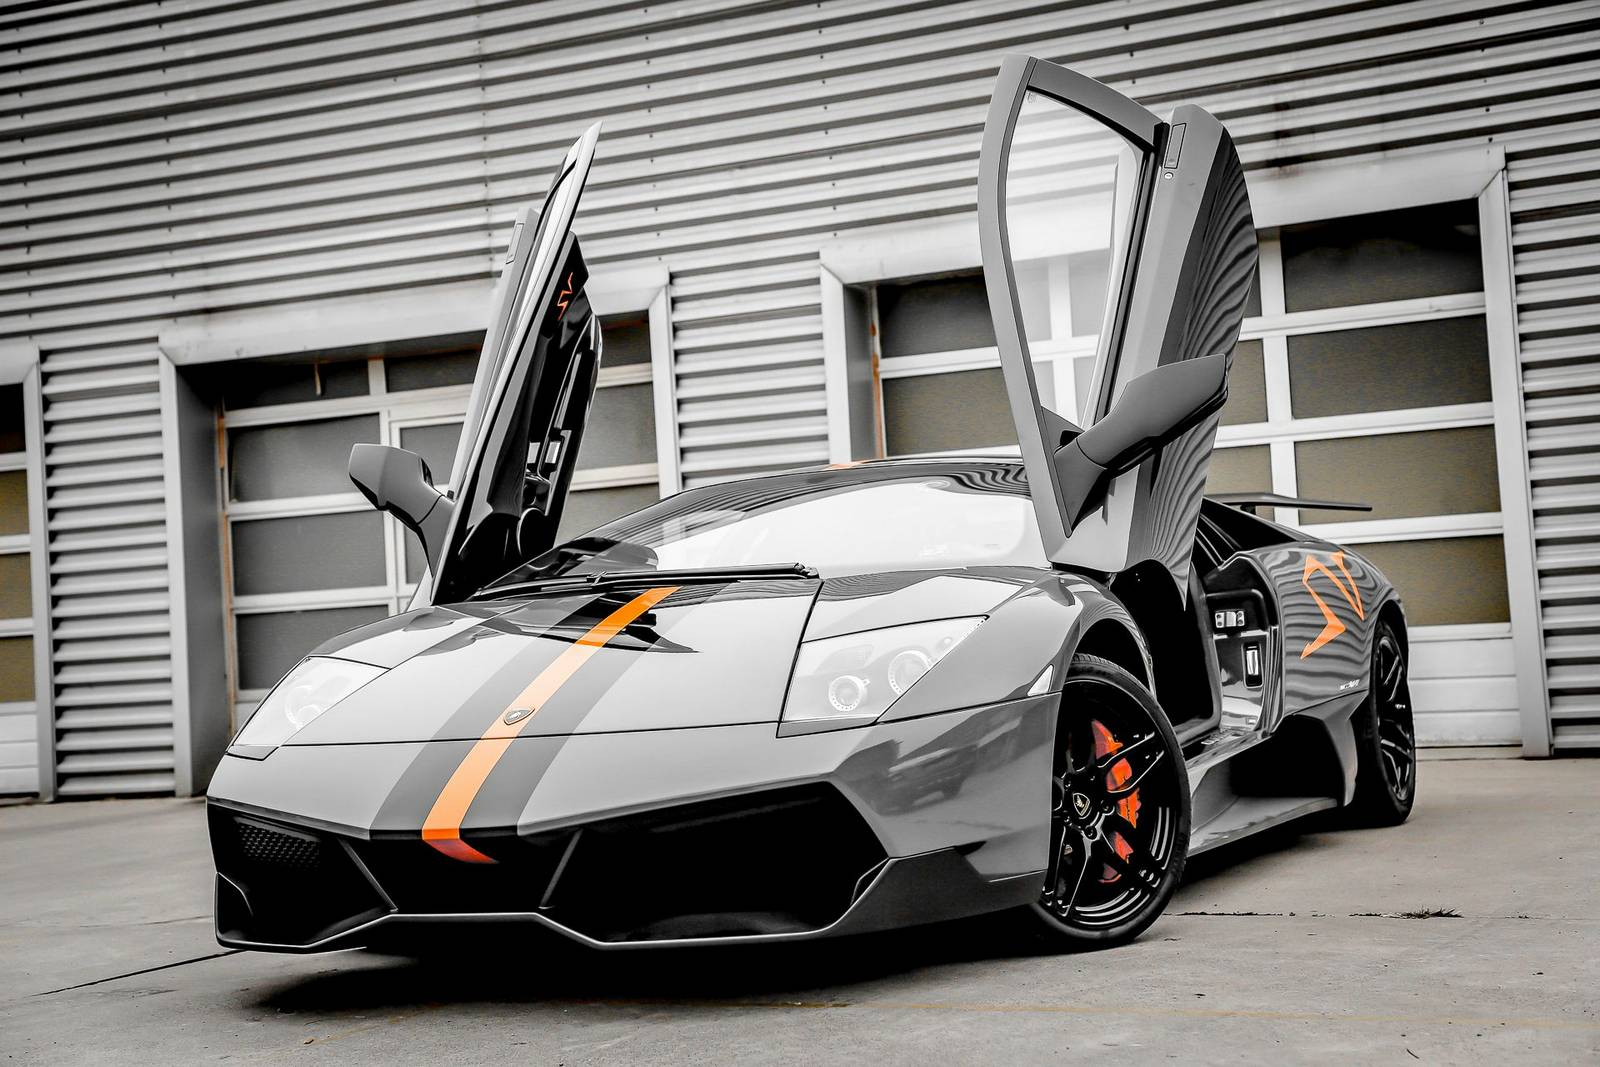 Awesome Videos Of Lamborghini Murcielago Lp670 4 Sv With Armytrix